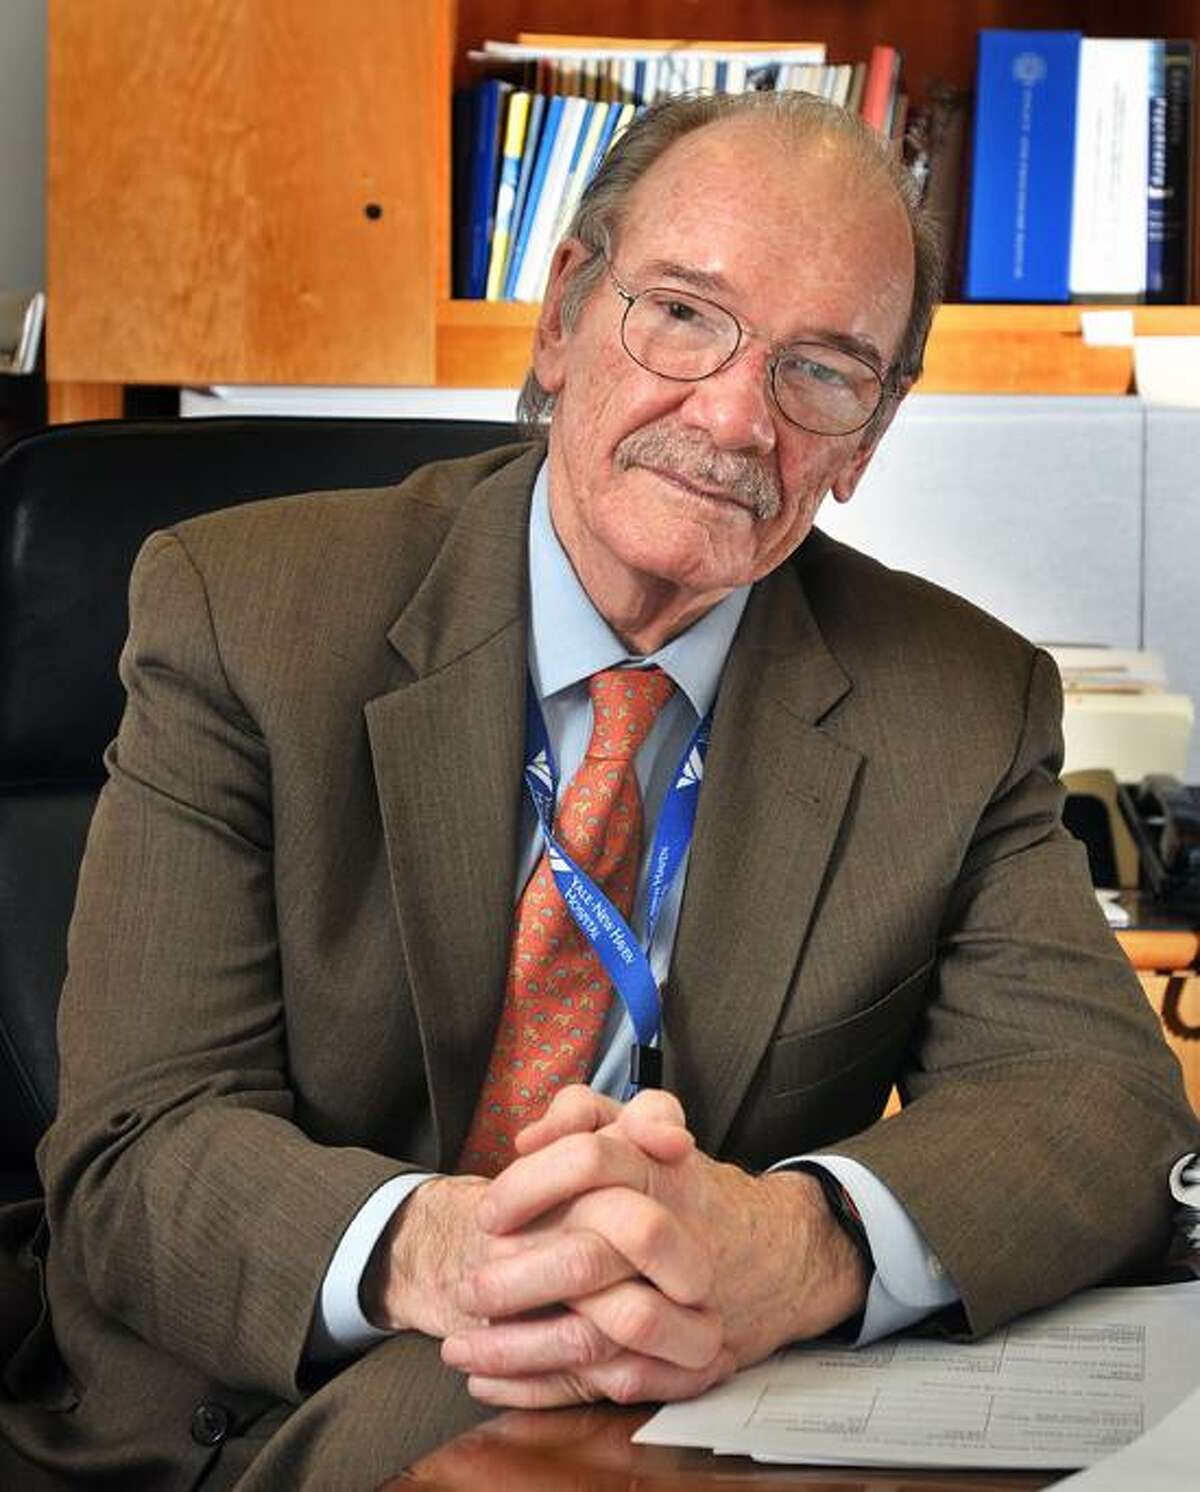 New Haven--Dr. William Sledge, medical director of the Yale-New Haven Psychiatric Hospital in his office at the hospital. Photo-Peter Casolino 1/28/13